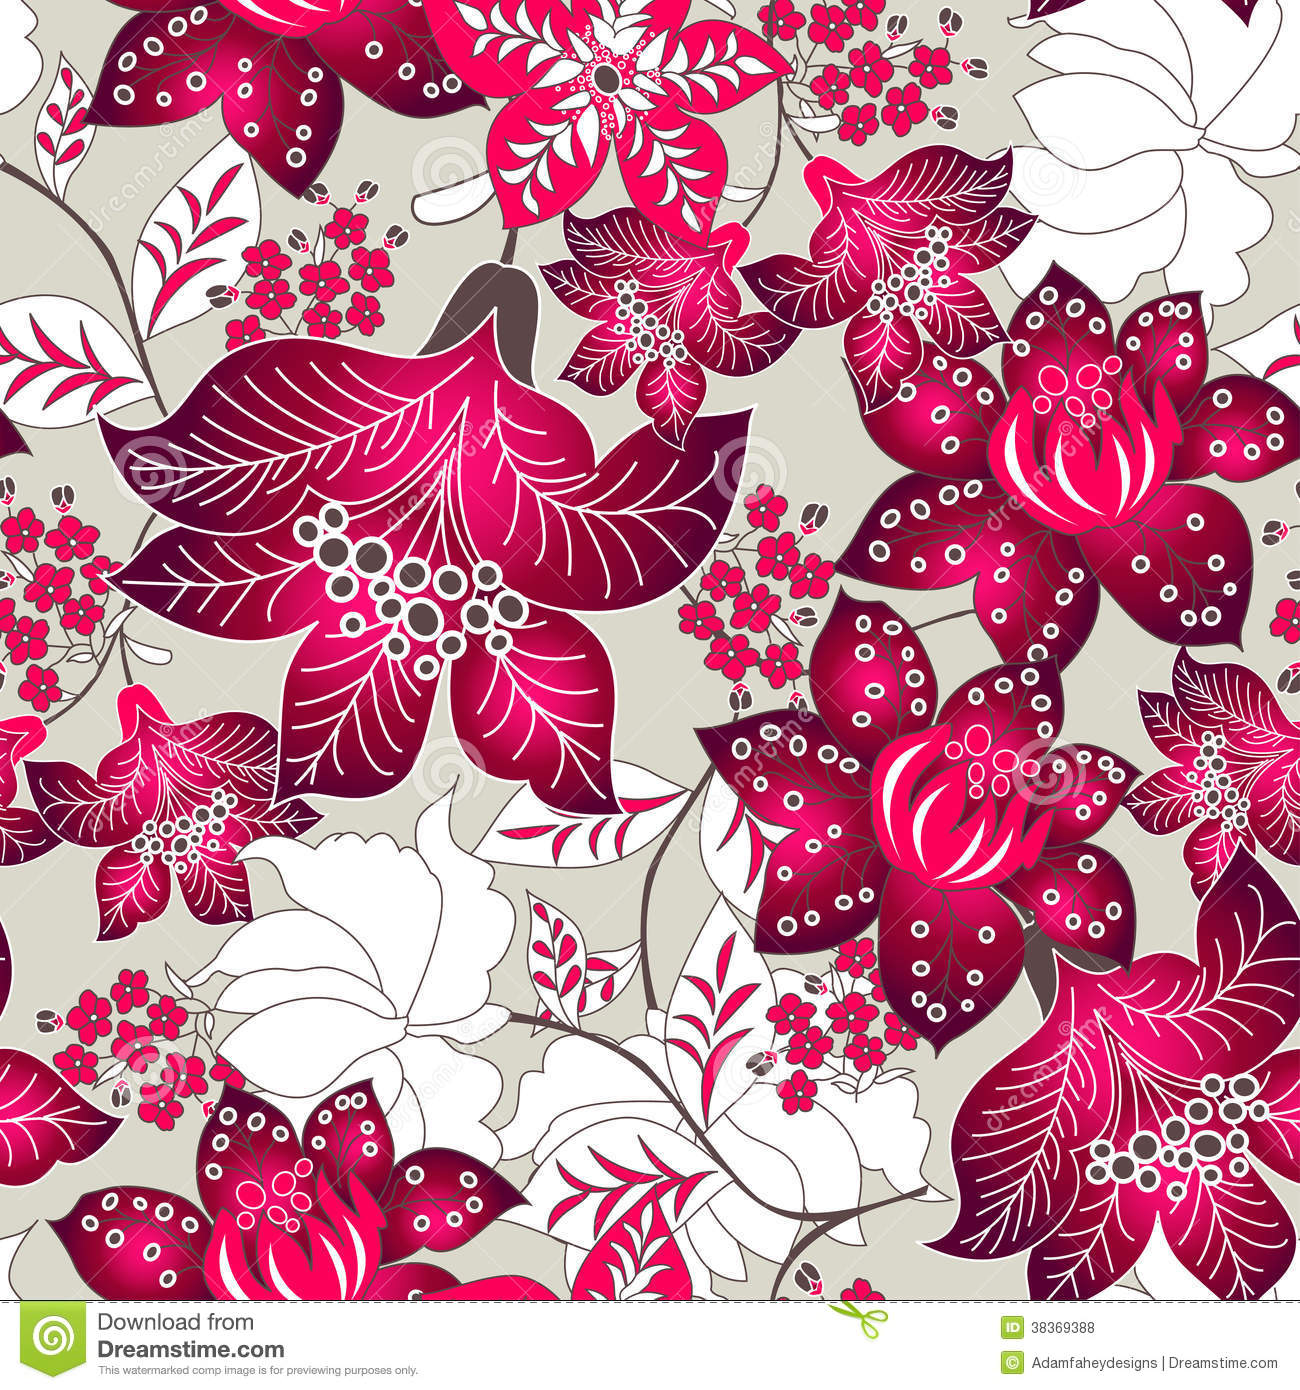 Seamless pattern of tropical red flowers on a light background.